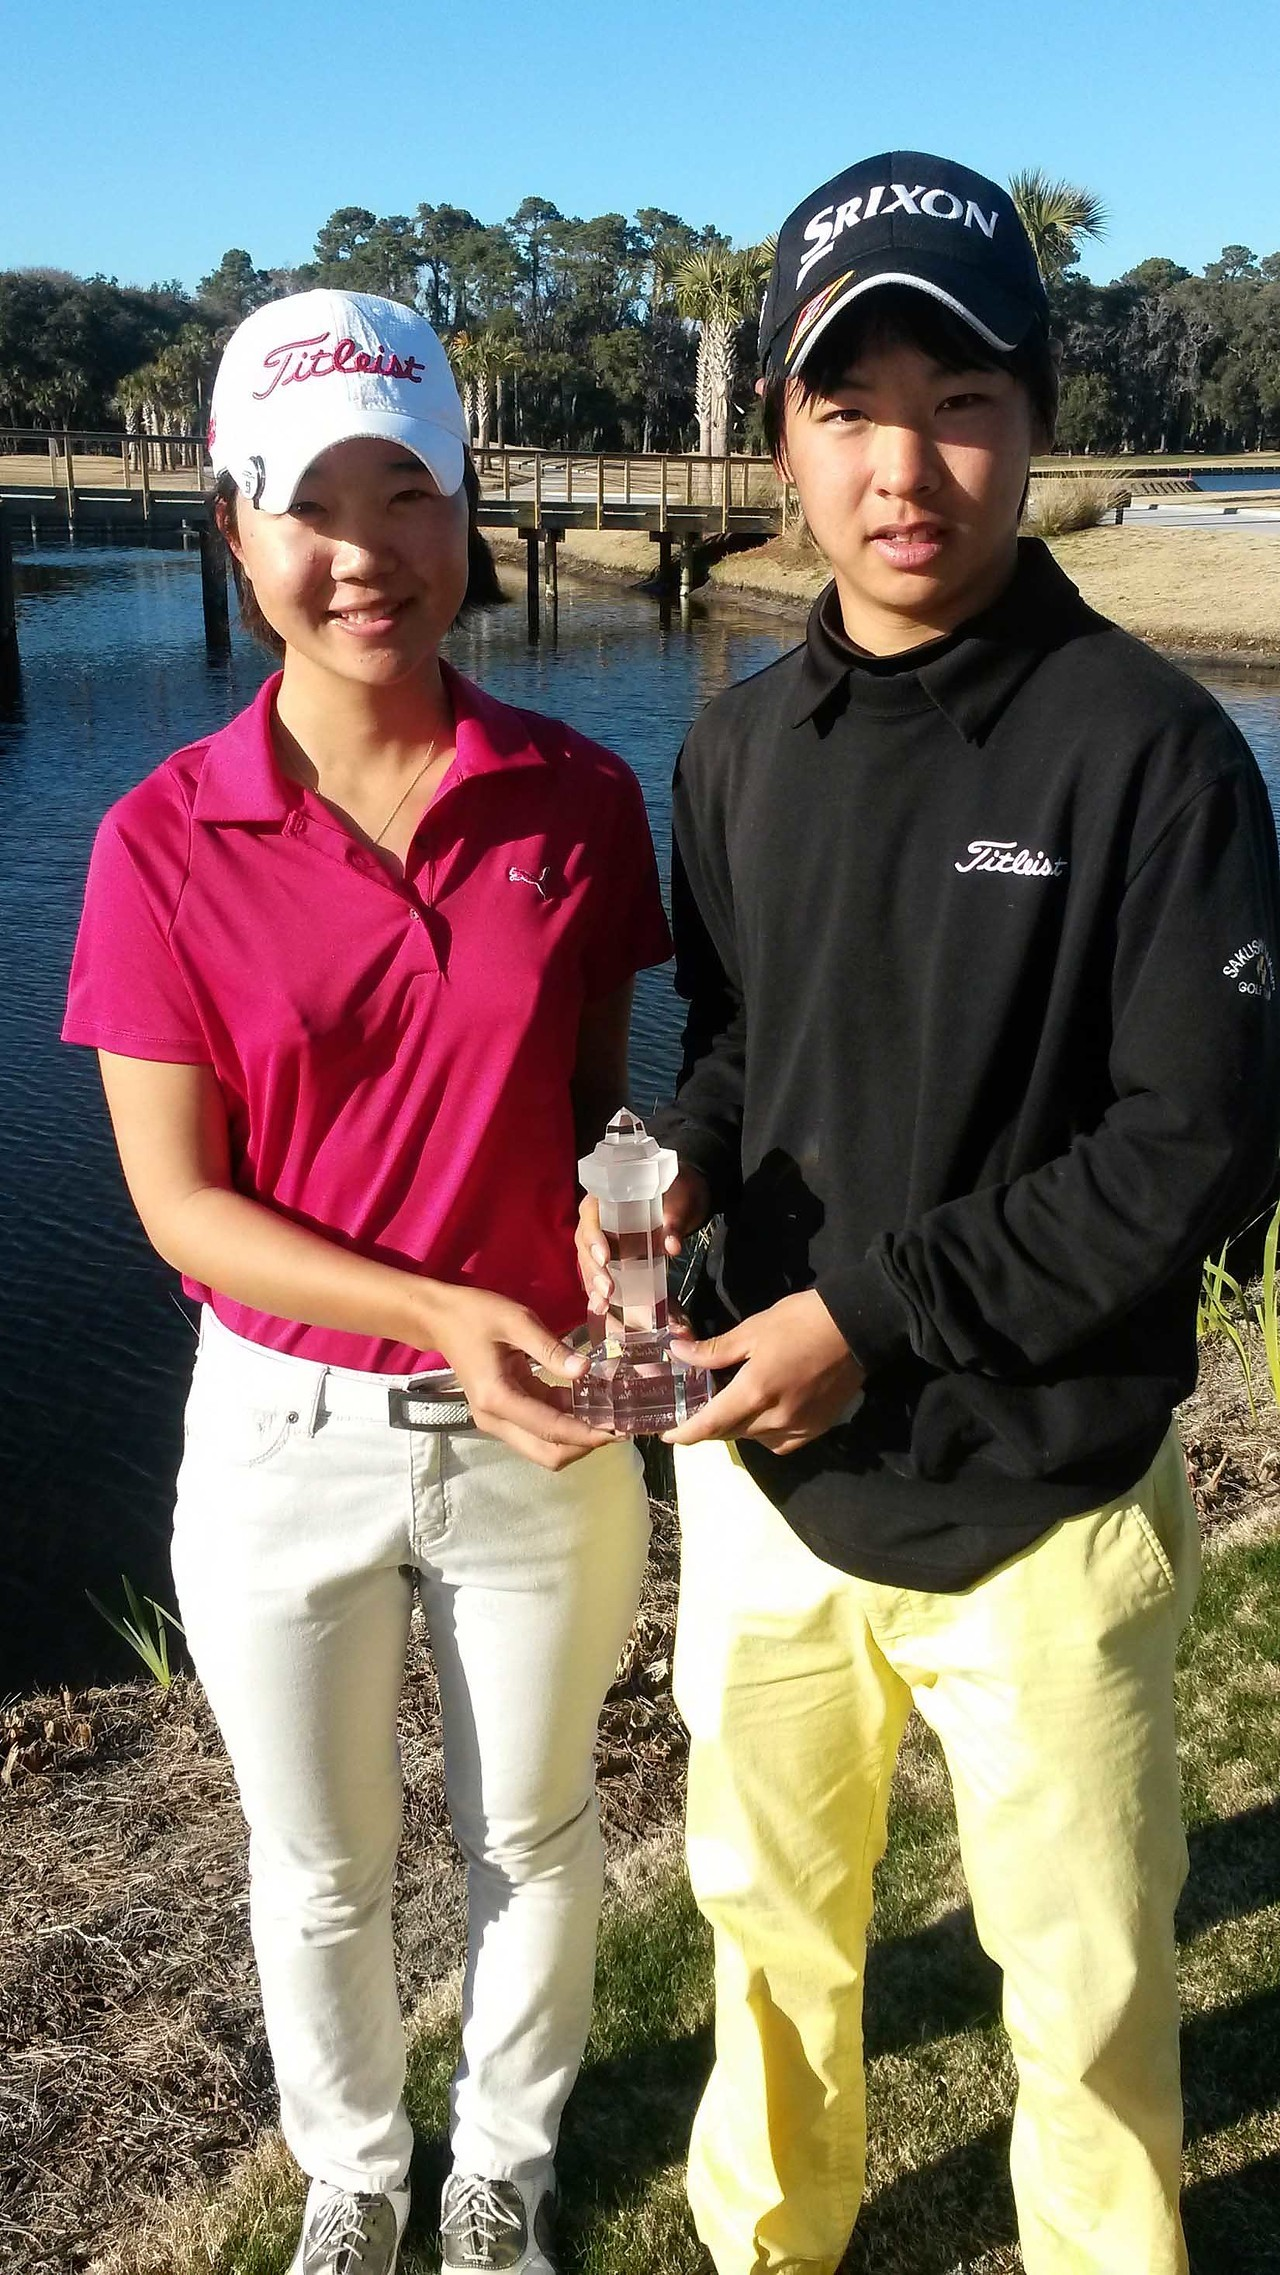 Nakatani & Go both placed third in their respective divisions